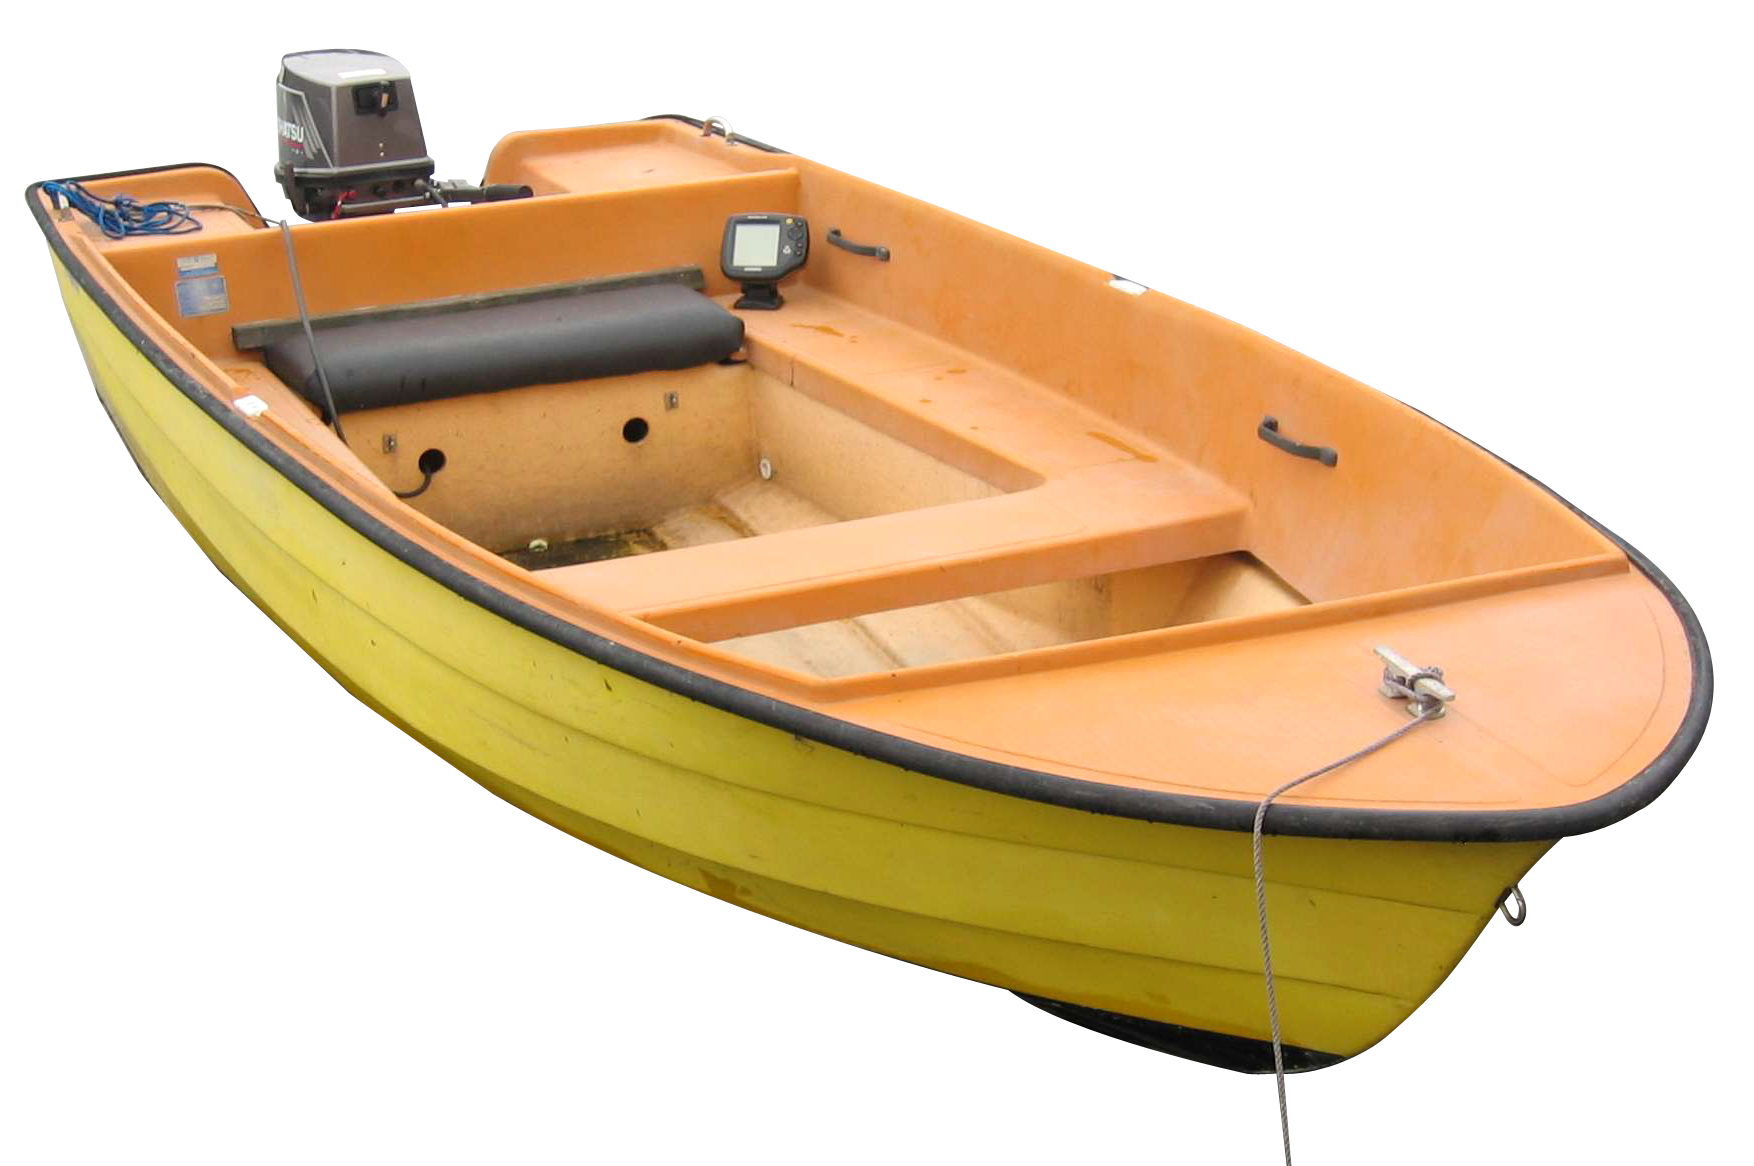 image library download Vector boat dinghy. Png images free download